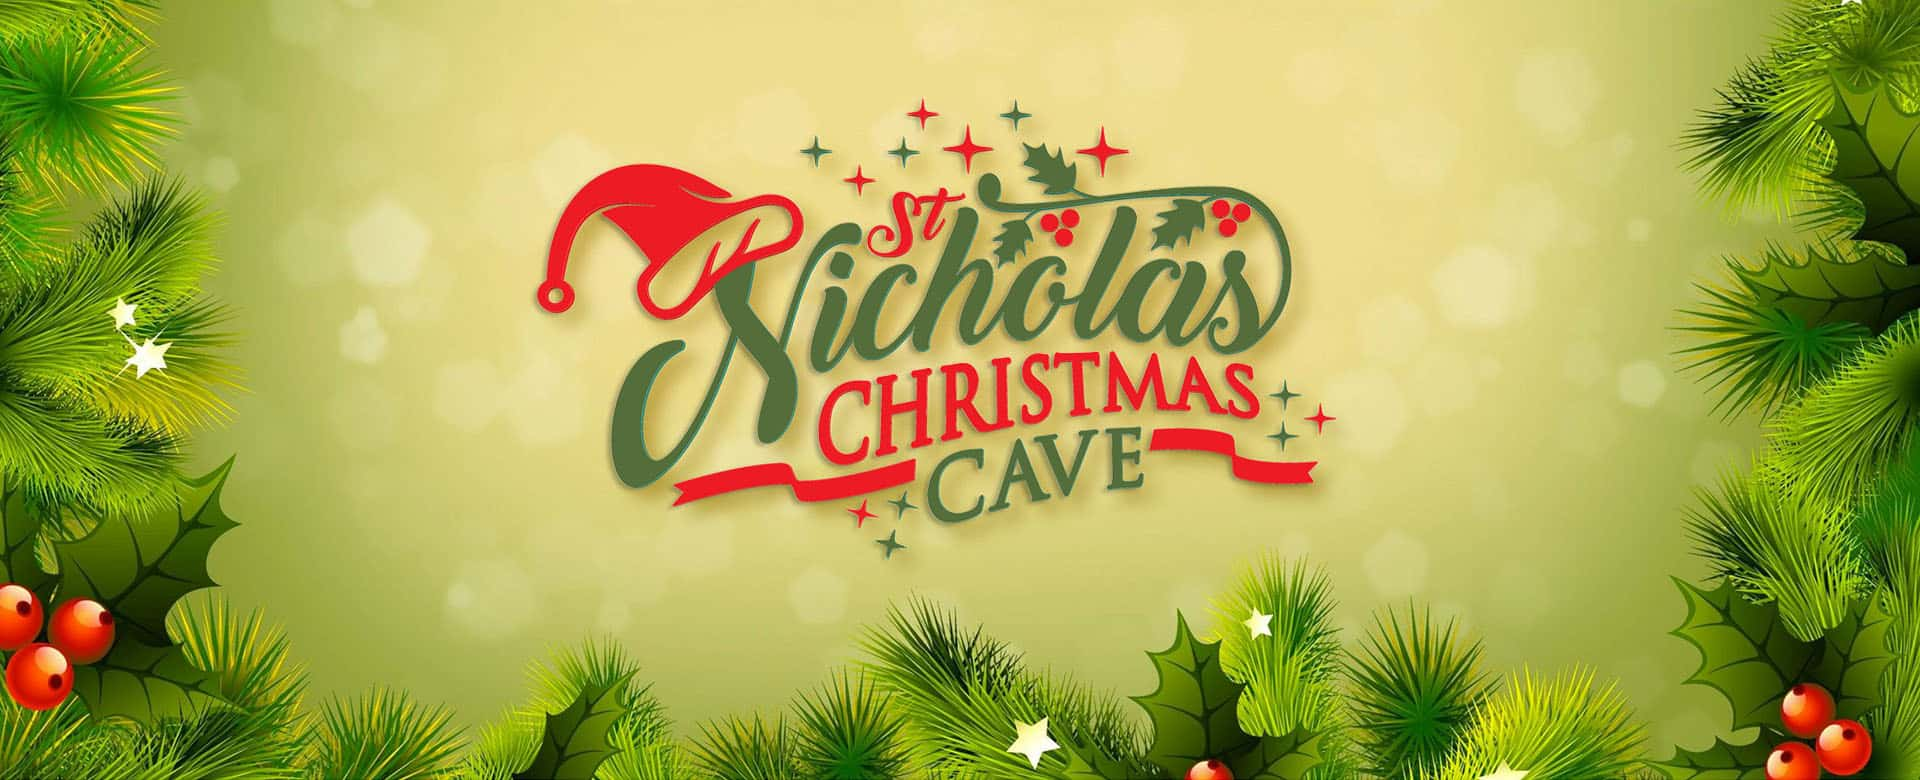 st nicholas christmas cave - our story